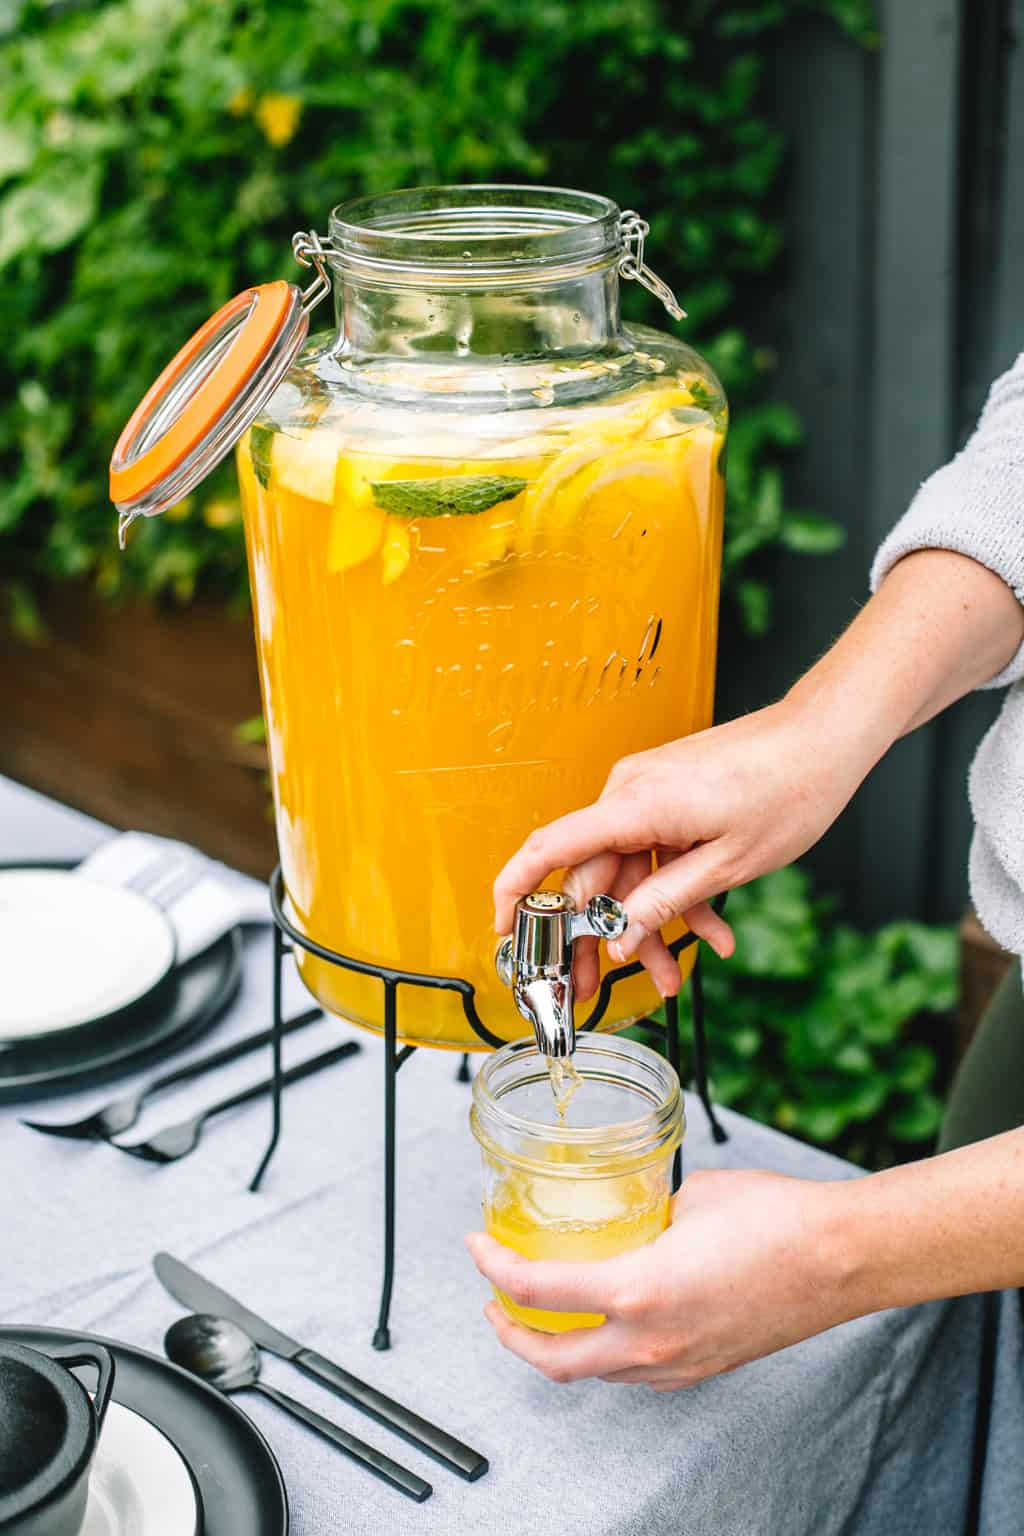 Beverage dispenser full of mango lemonade being poured into a mason jar.